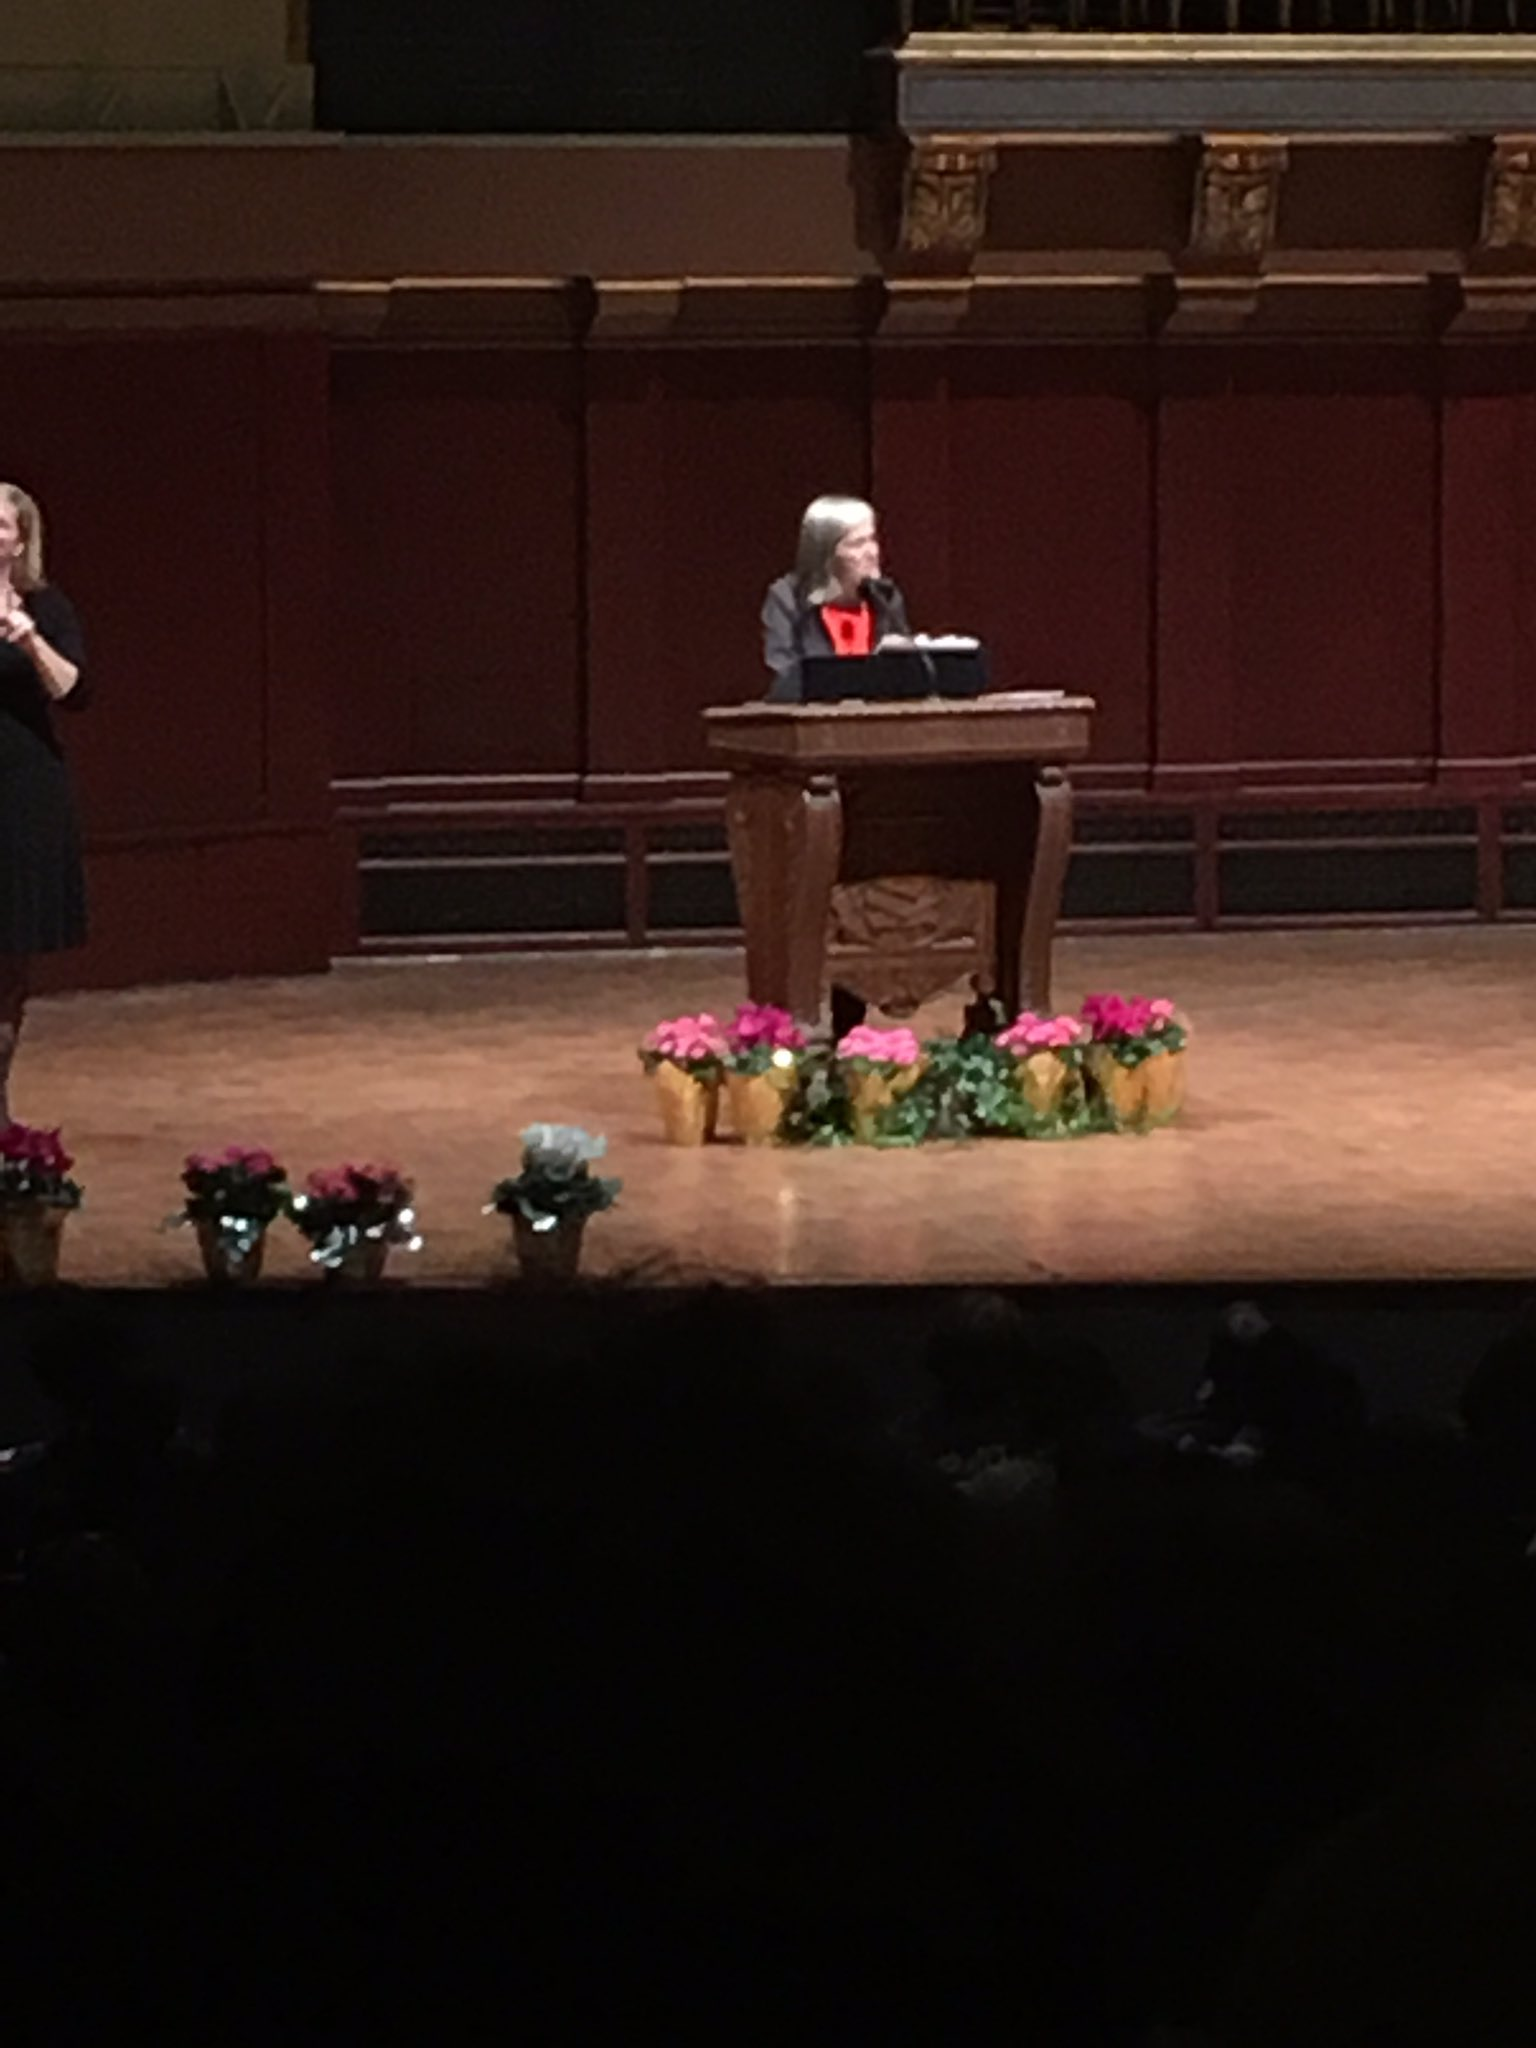 Hey @KBCS look who's at @UMich today-@democracynow Amy Goodman MLK speaker along w/ @IssaRae. Goodman doing what she does best storytelling! https://t.co/CZ1Rh9SFoG